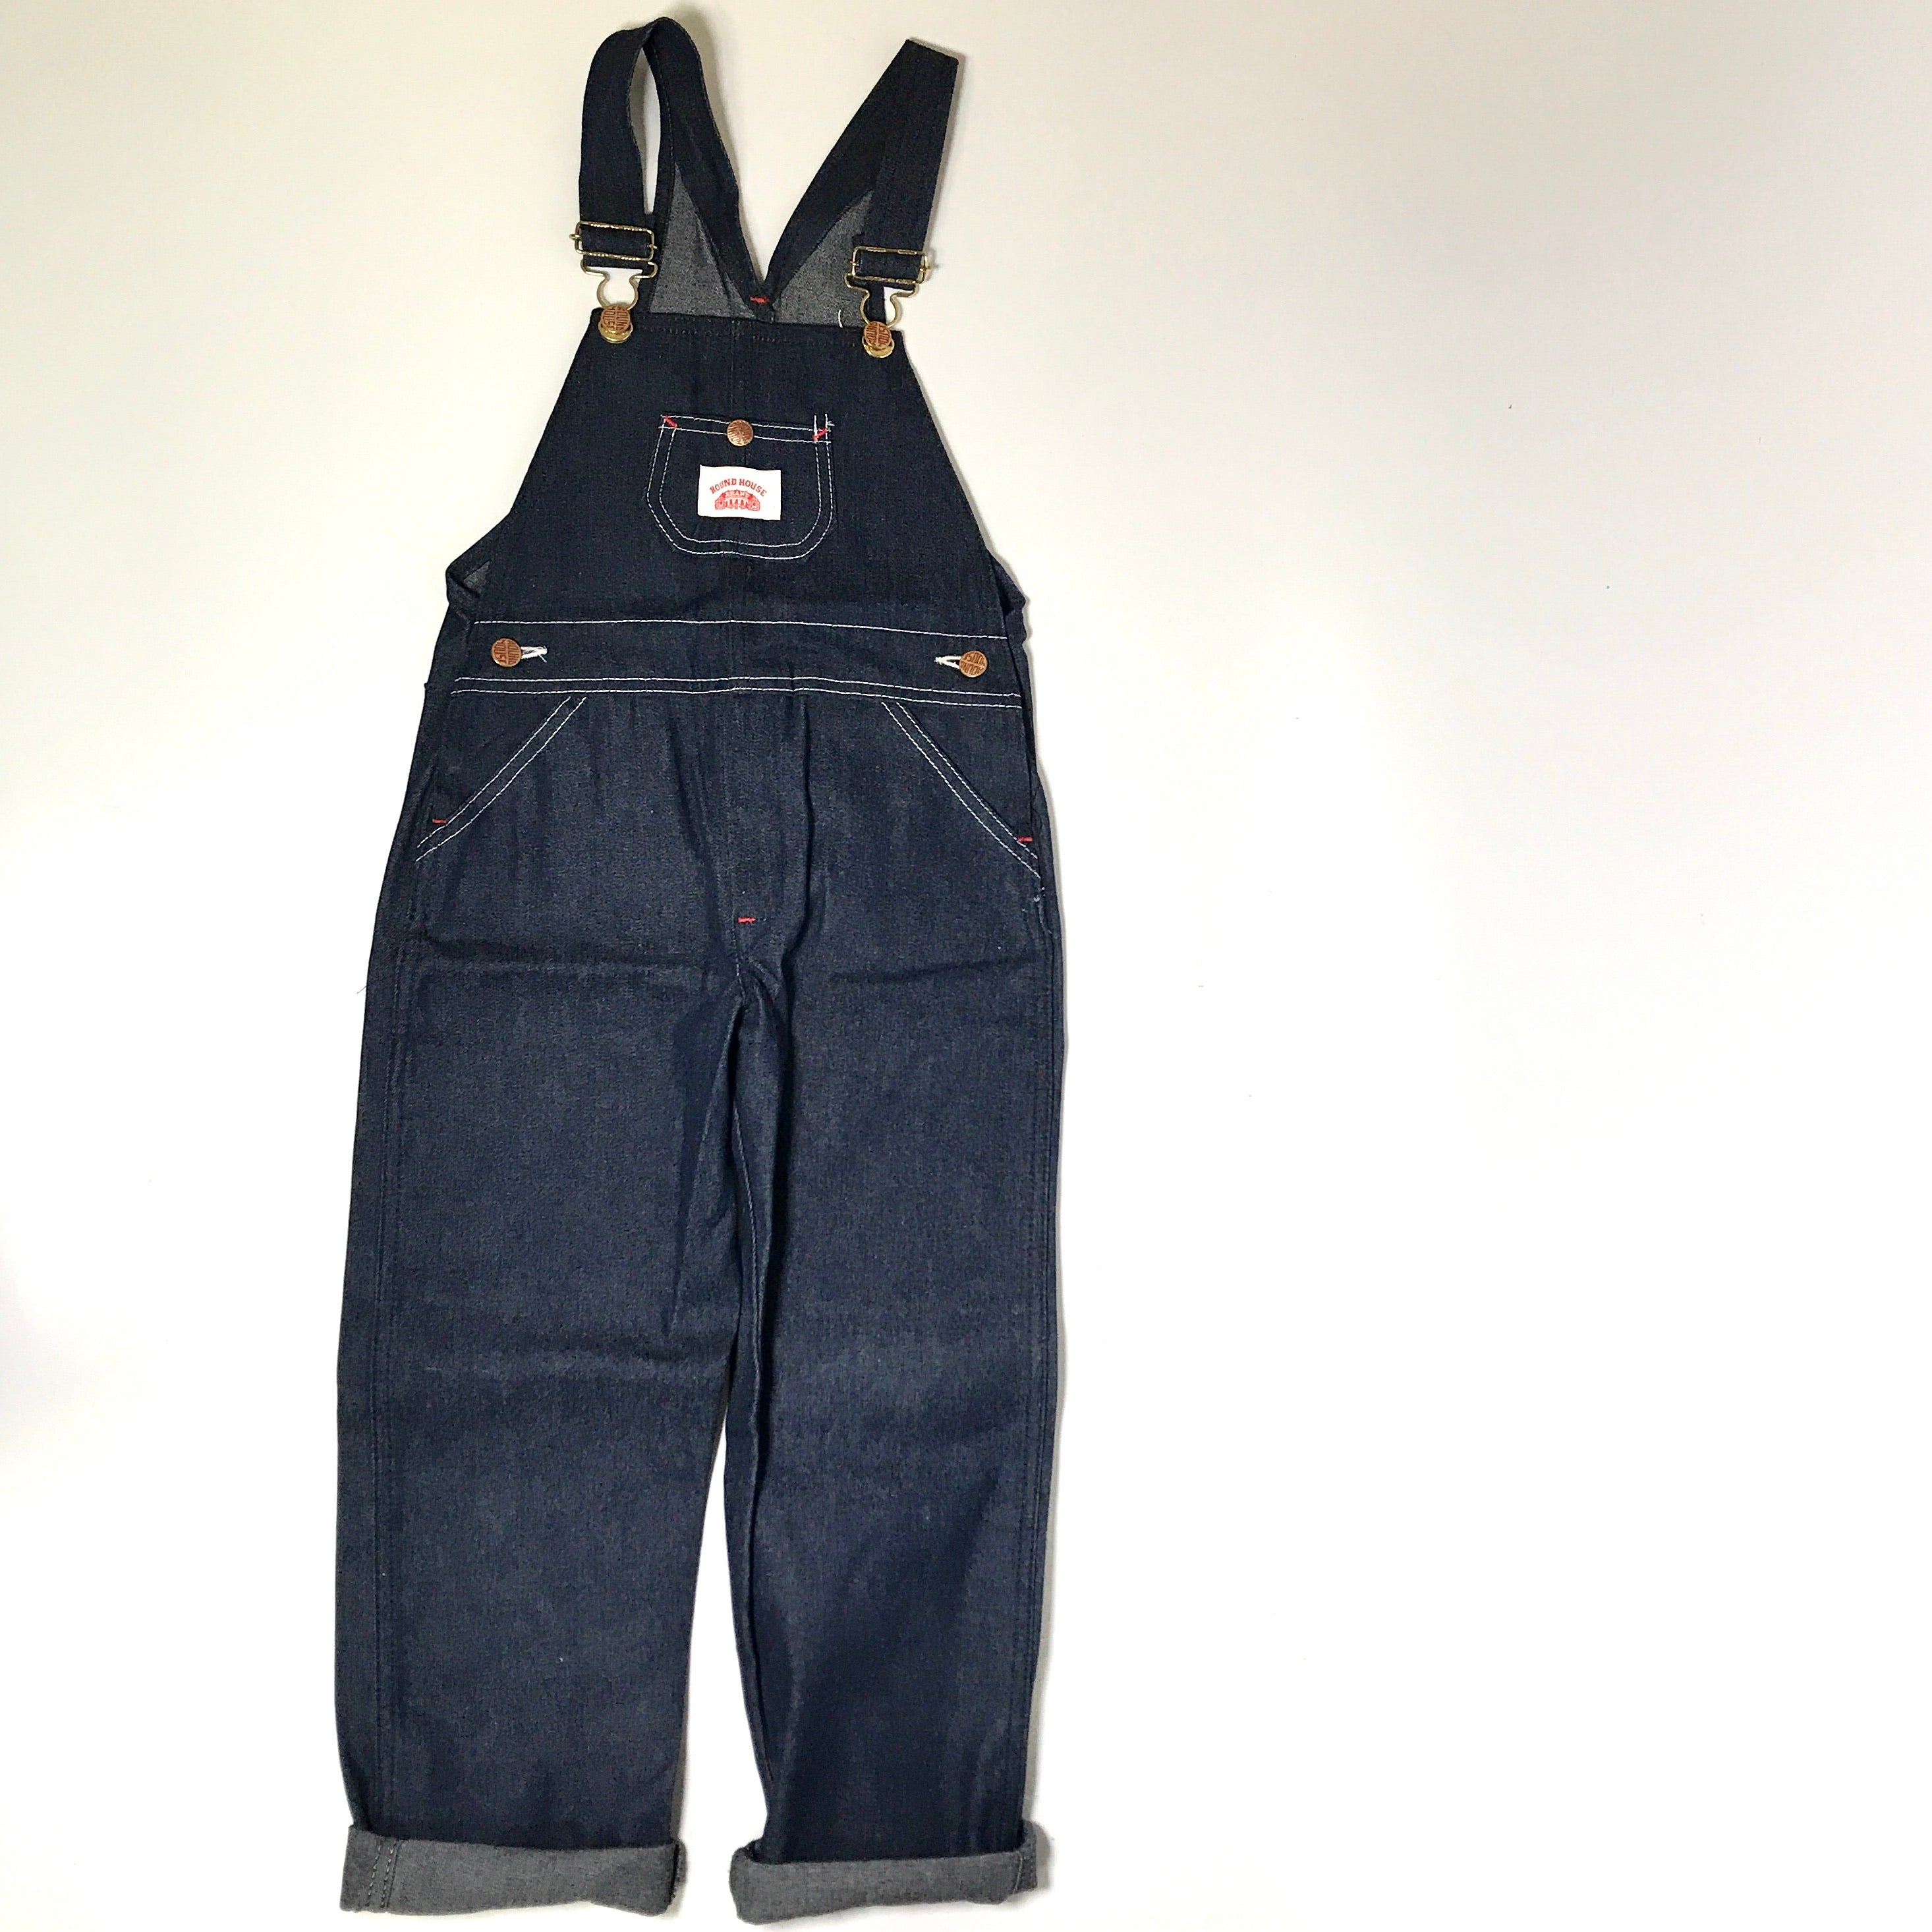 Bon Tot Vintage: Roundhouse Overalls size 7/8 years